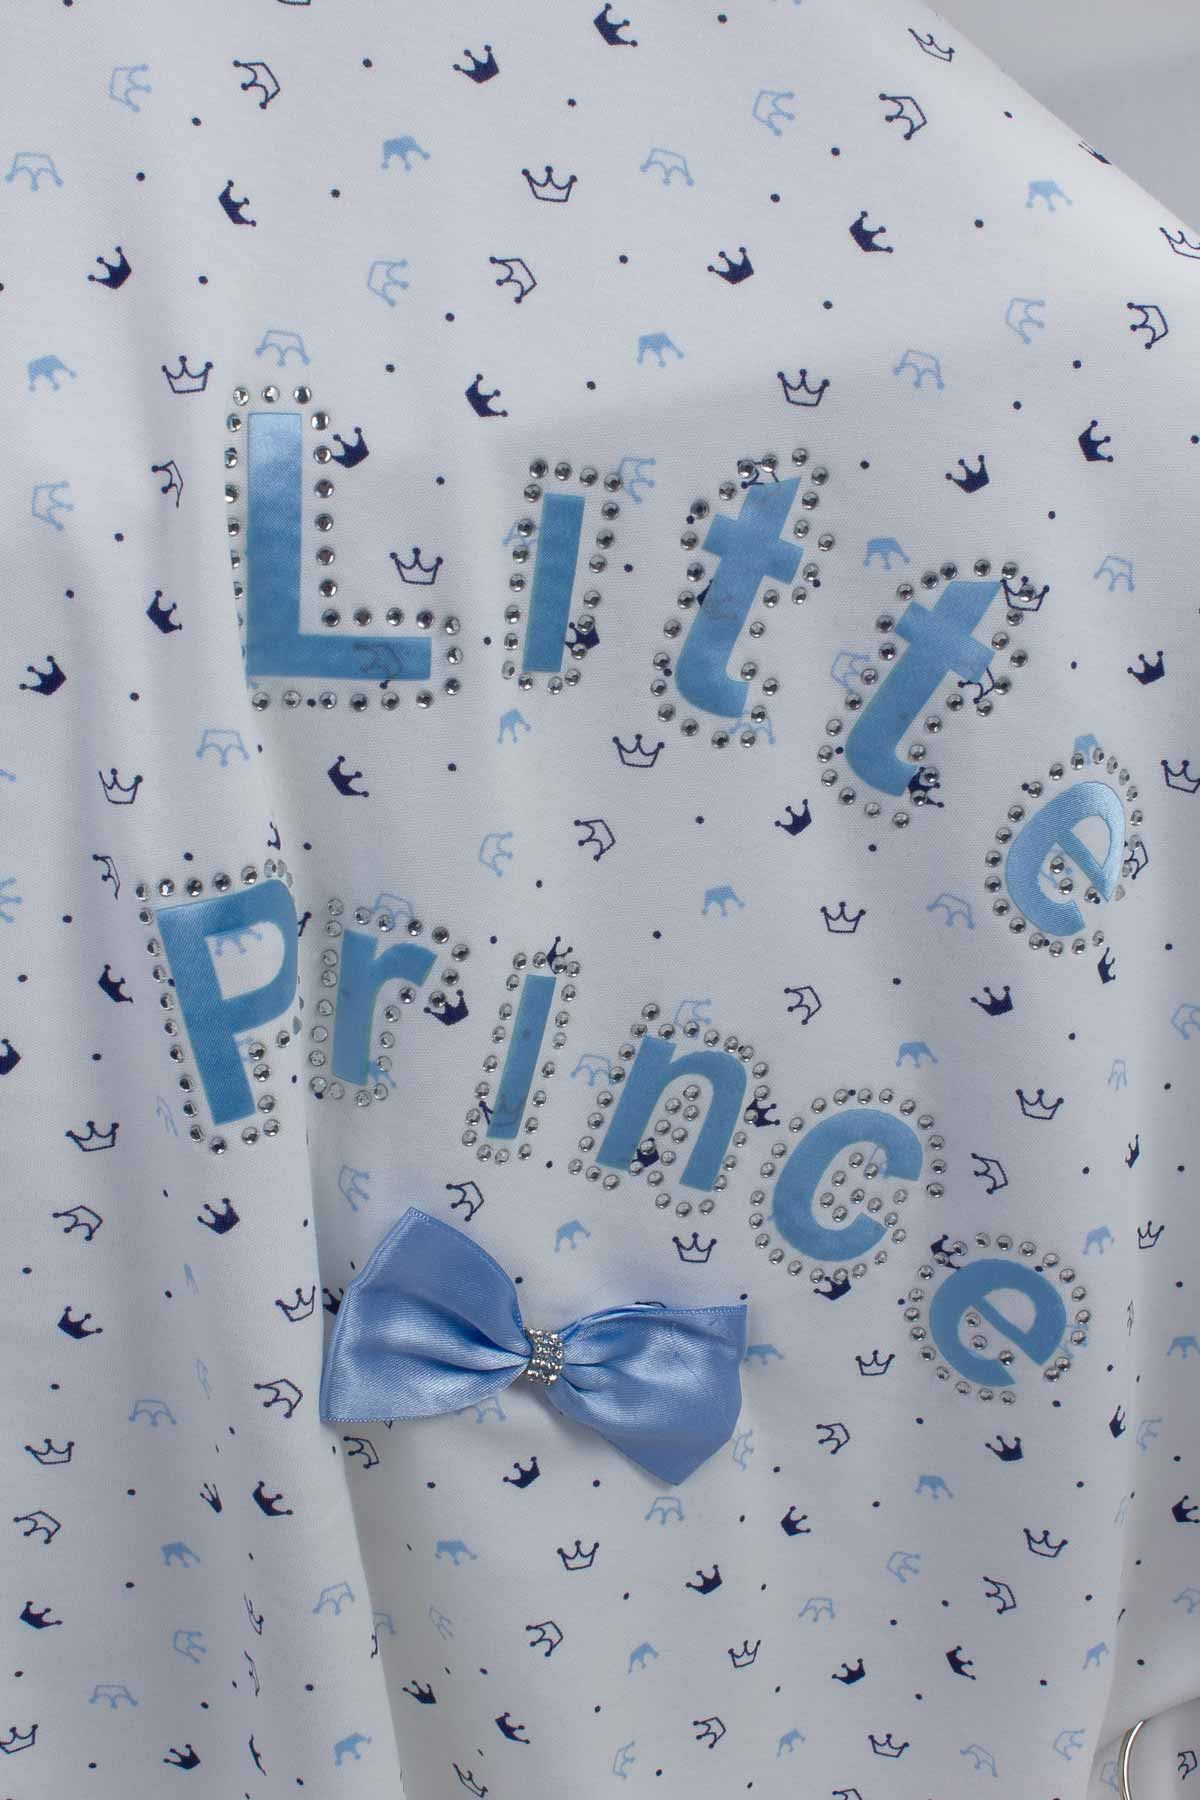 Blue Boy Baby Blanket Lıtte Prince Babies Newborn Cotton Ultra Soft Antibacterial Infants Boys Prince 80*85 Cm Blankets model